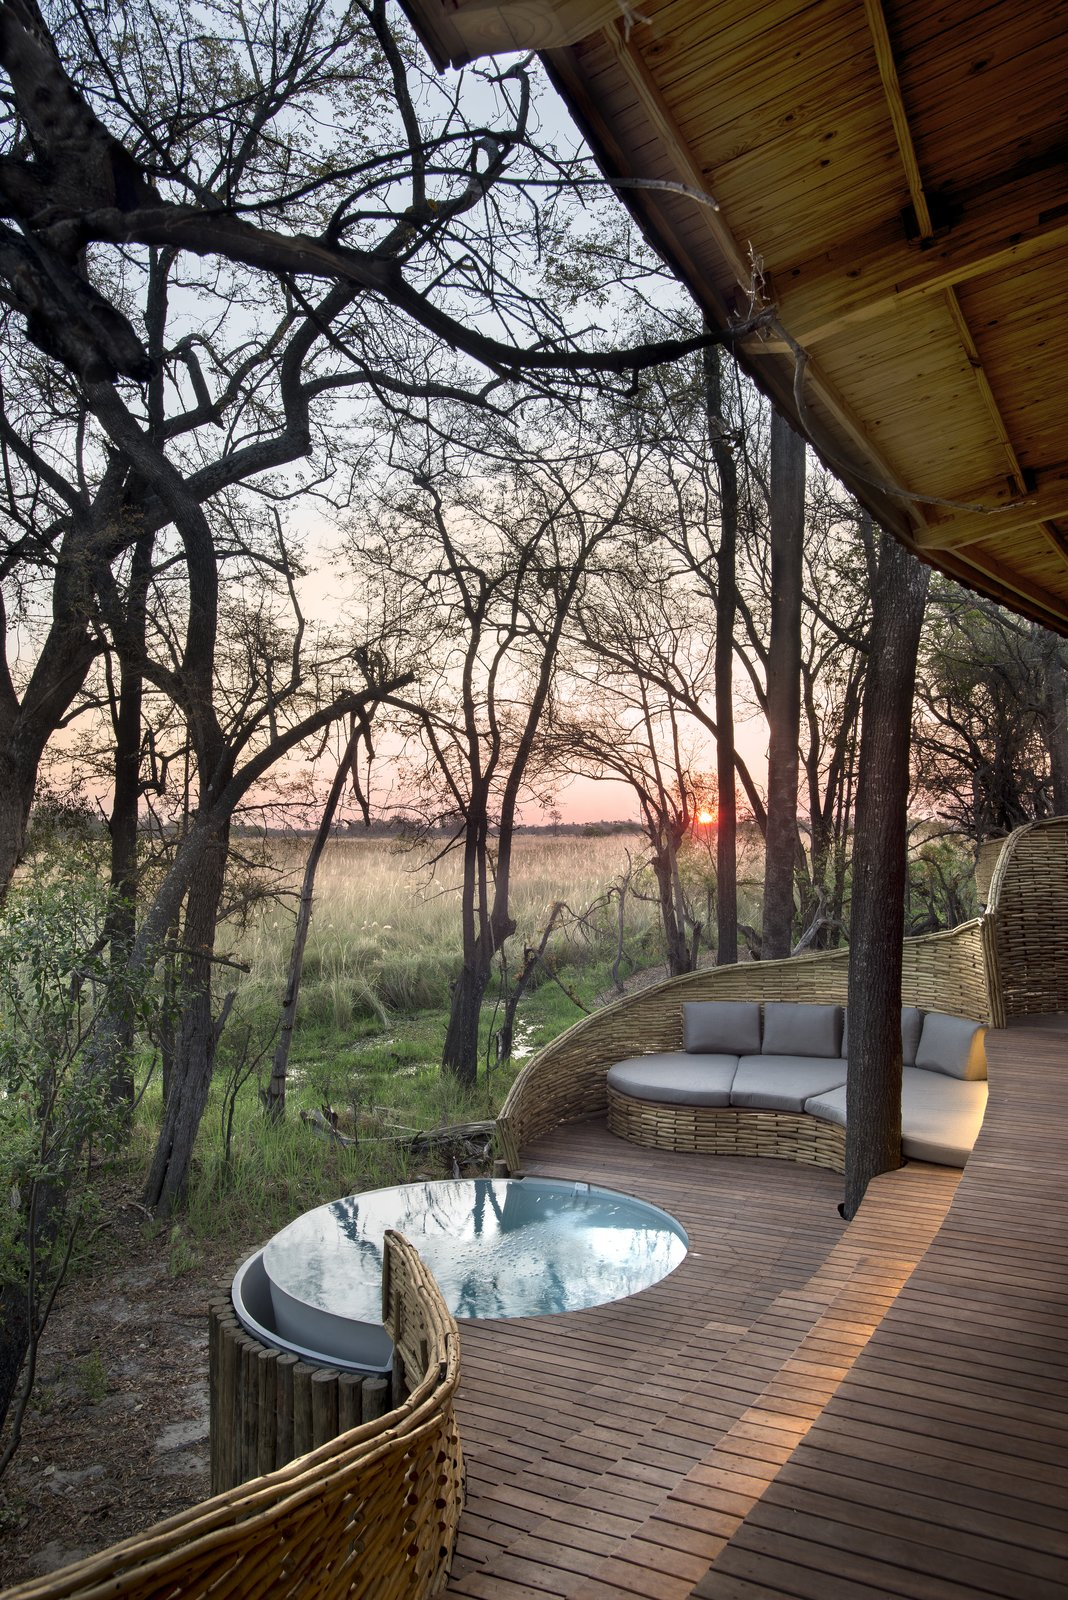 Photo 9 of 13 in Eco-Friendly Safari Lodge in Africa's Okavango Delta